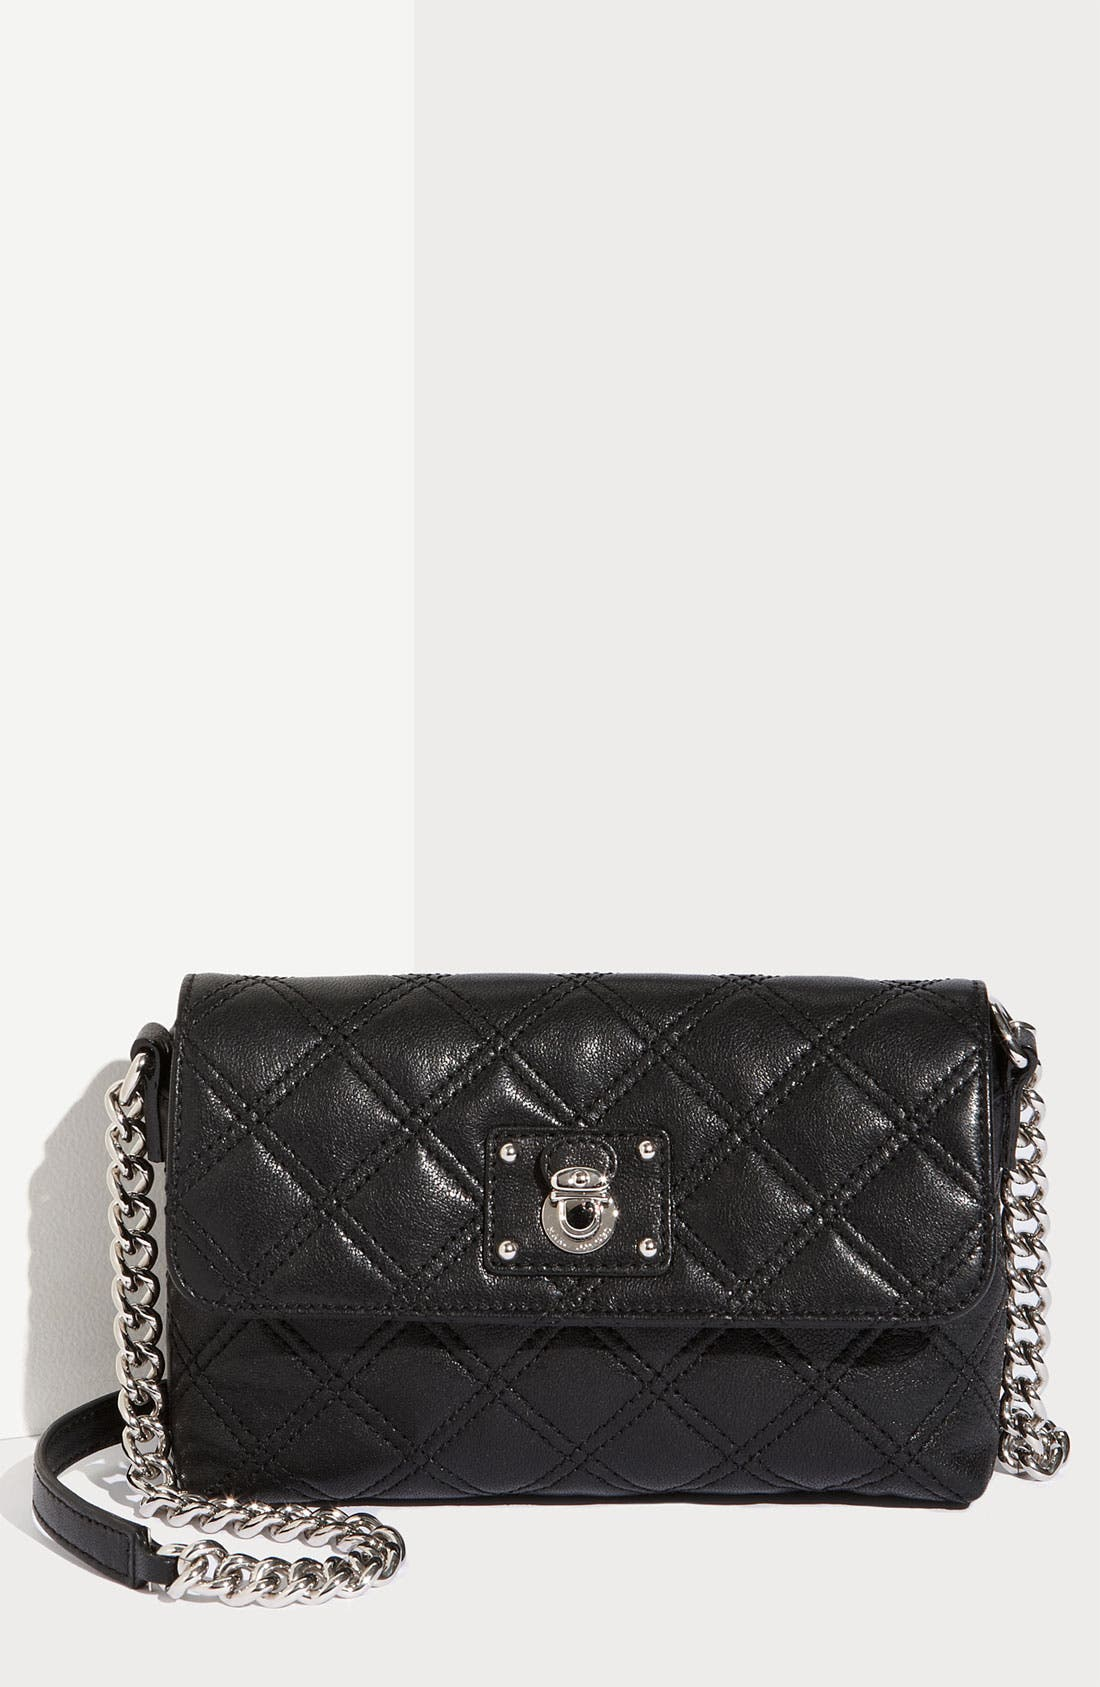 Alternate Image 1 Selected - MARC JACOBS 'Quilting Single' Shoulder Bag